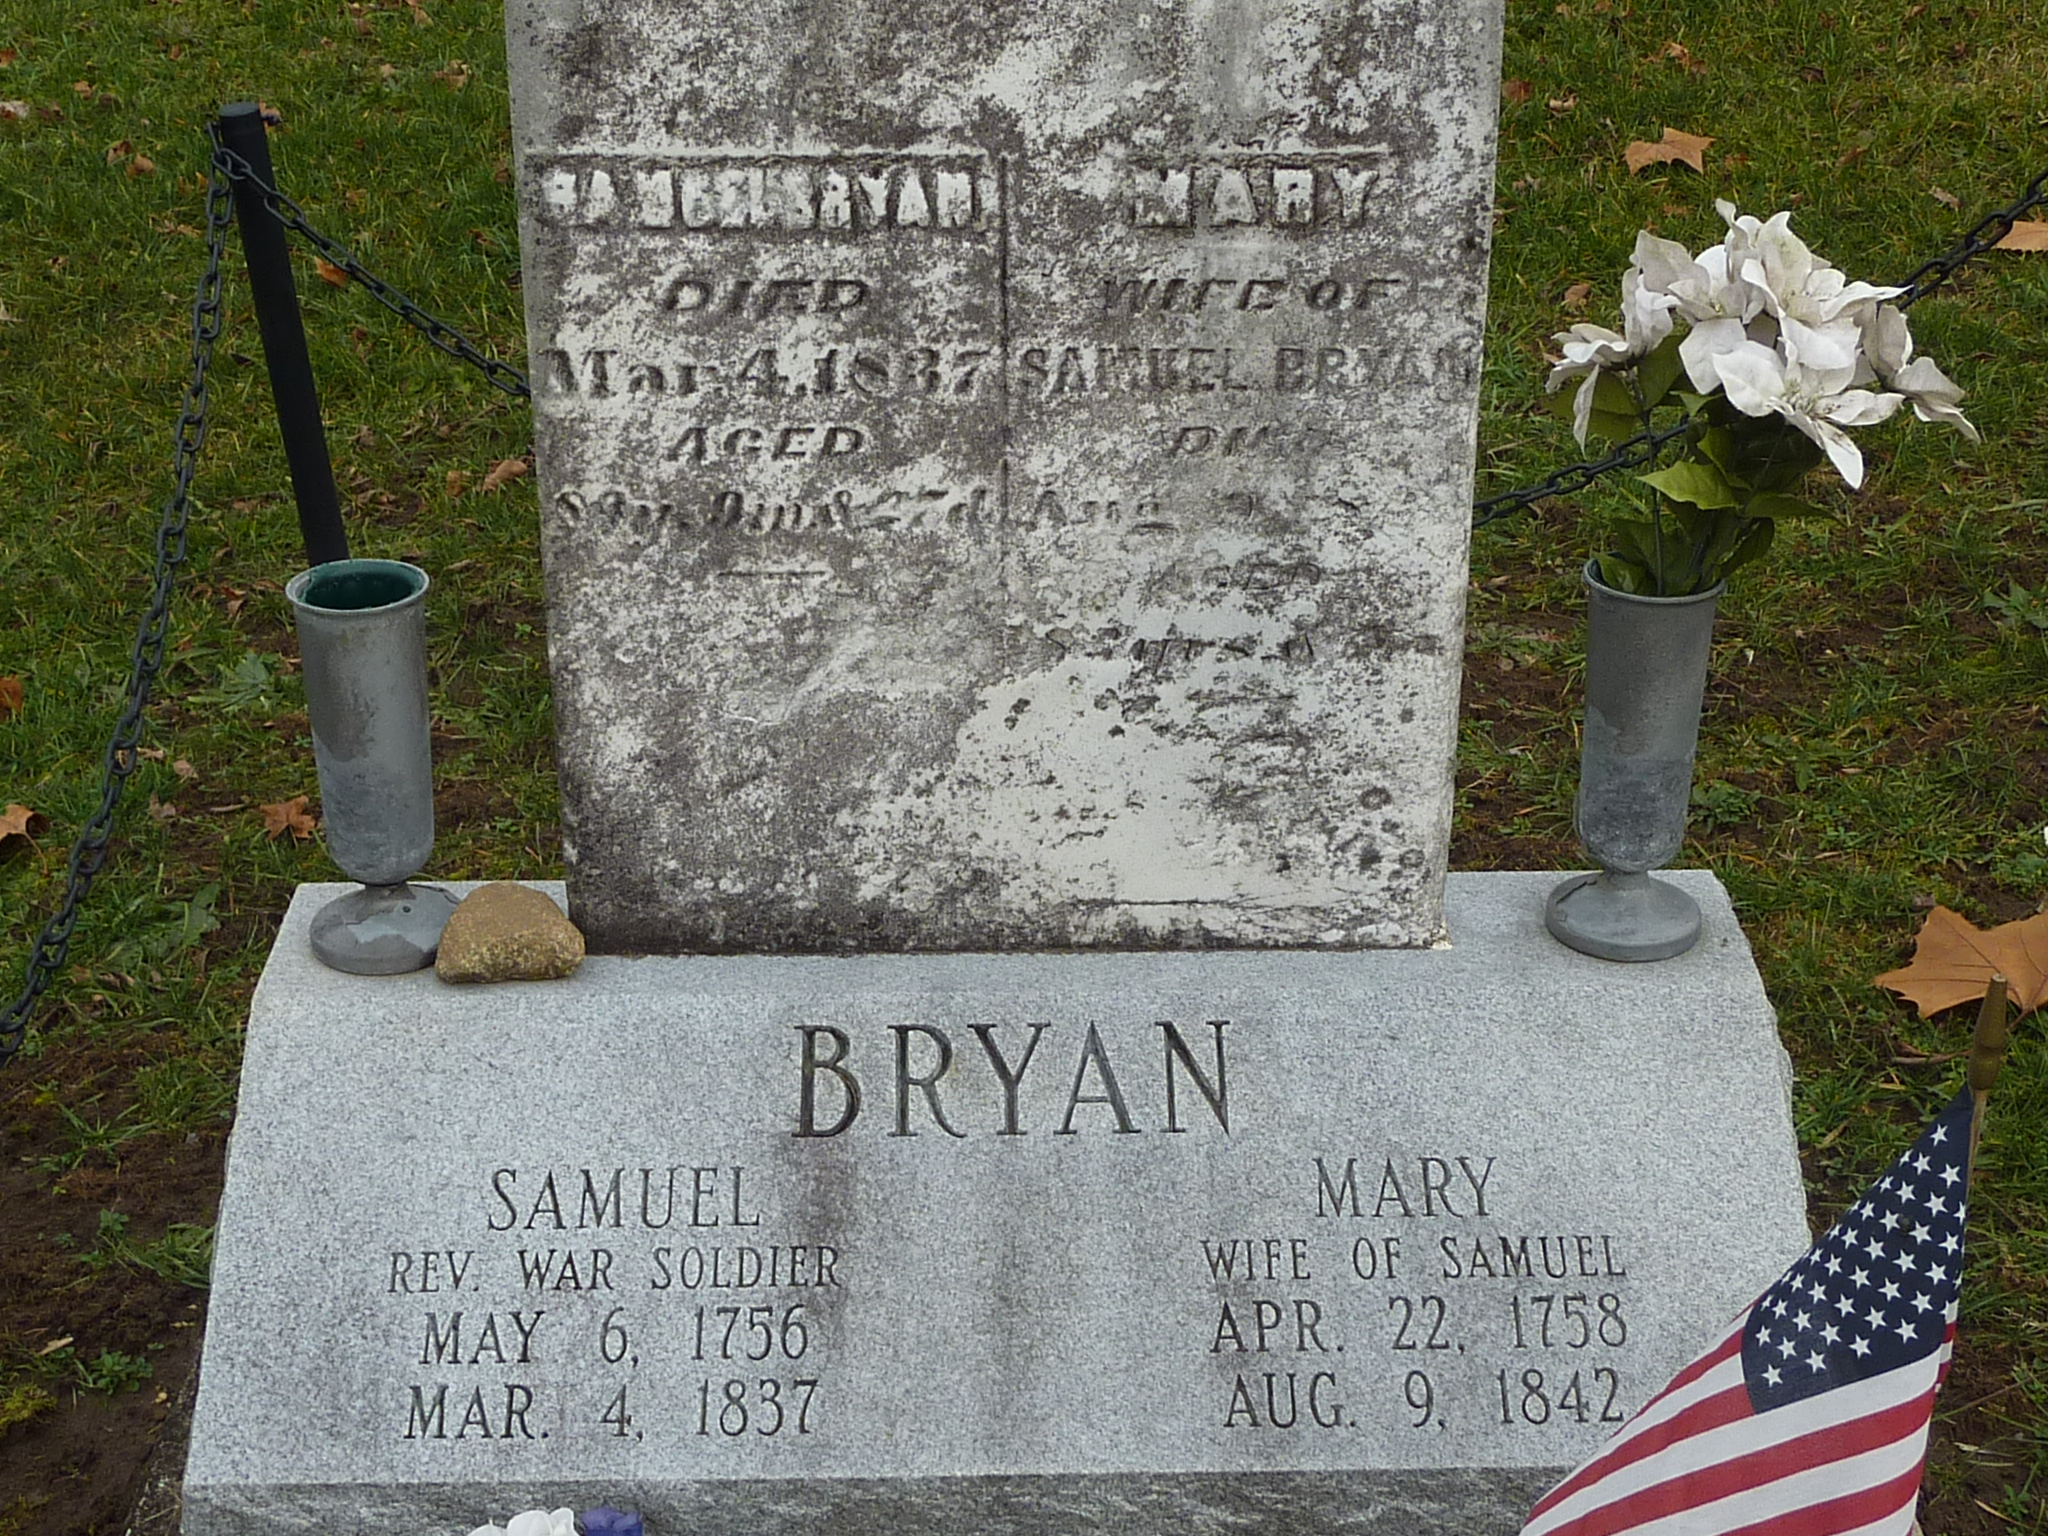 Original and modern tombstones at the graves of Samuel and Mary Bryan